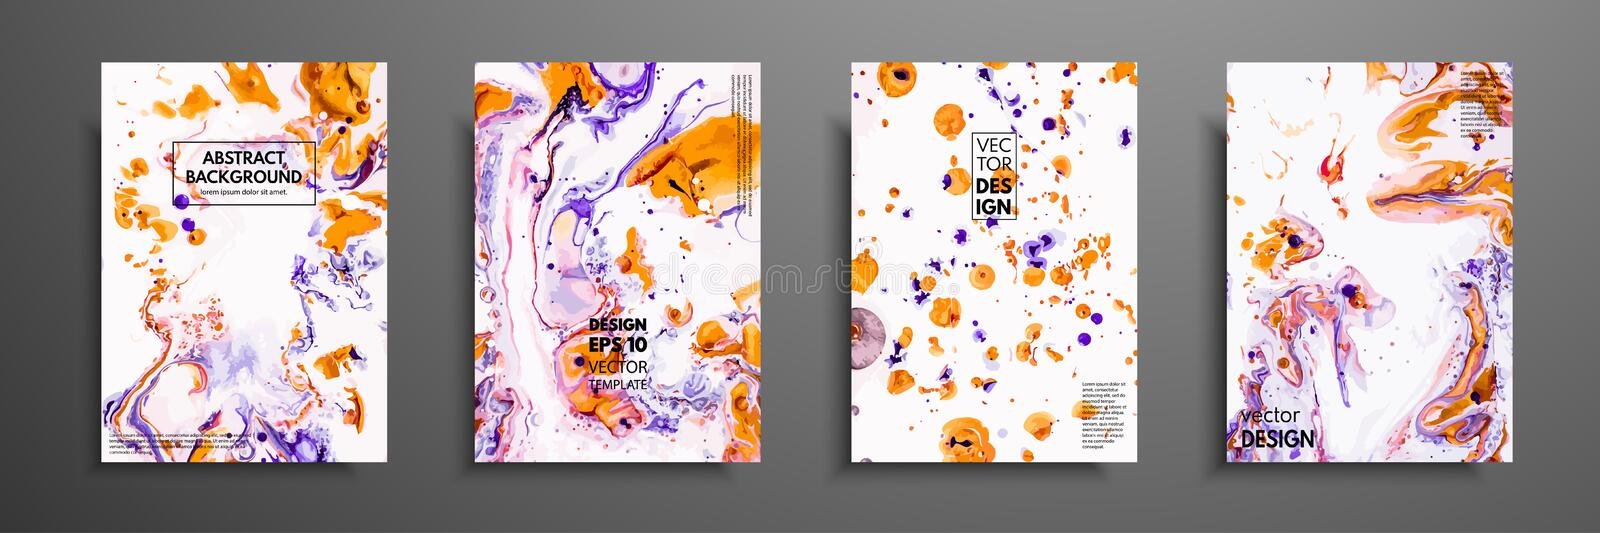 Colorful covers design set with textures. Closeup of the painting. Abstract bright hand painted background, fluid acrylic painting stock illustration